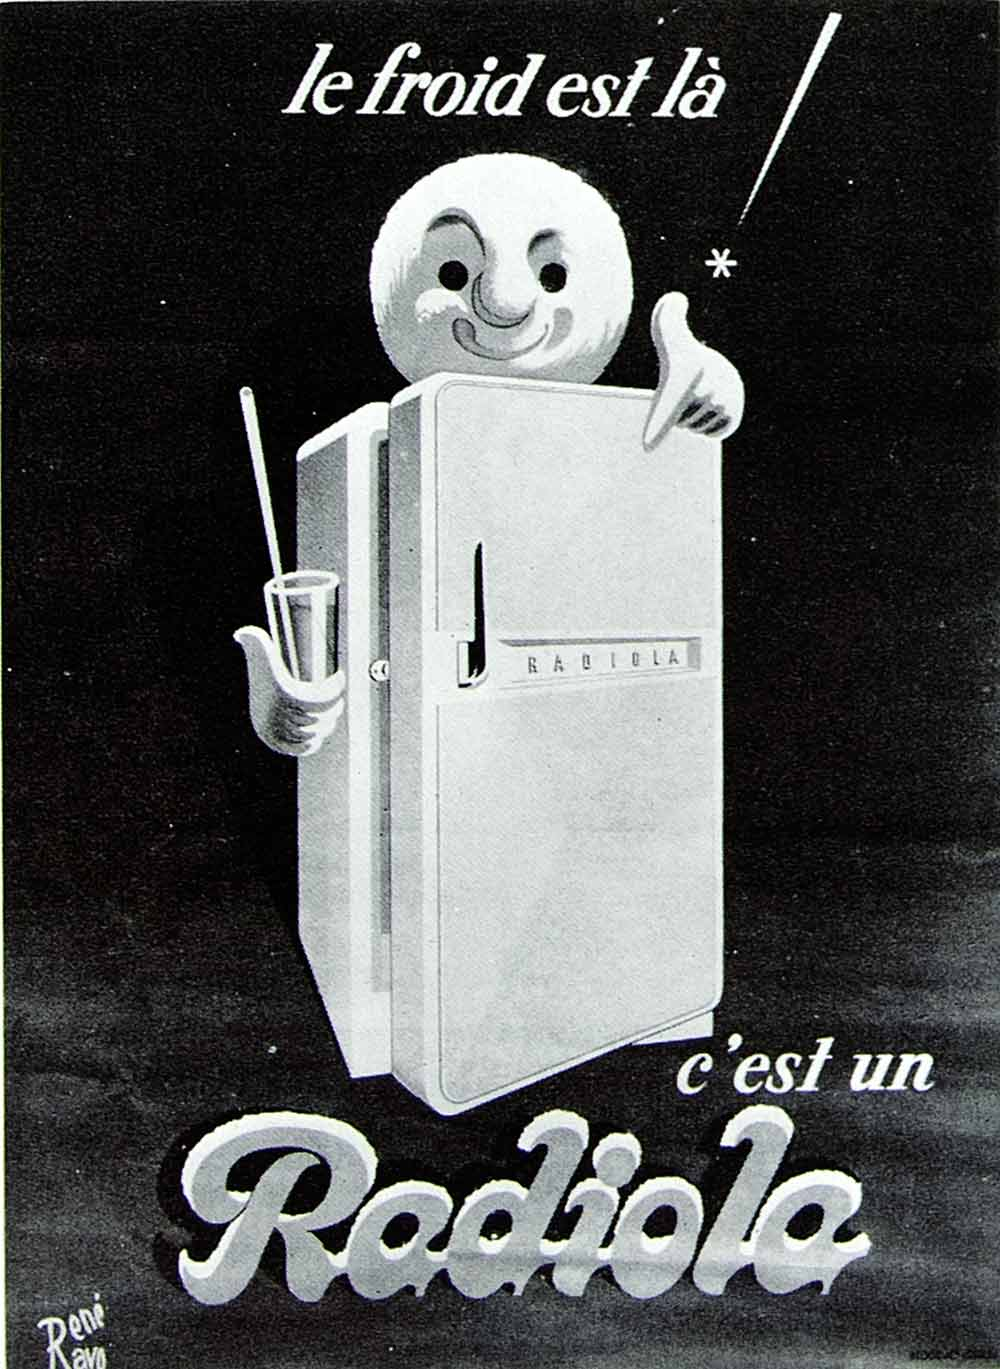 1957 Print Rene Ravo Art French Advertising Poster Refrigerateurs Radiola VENA1